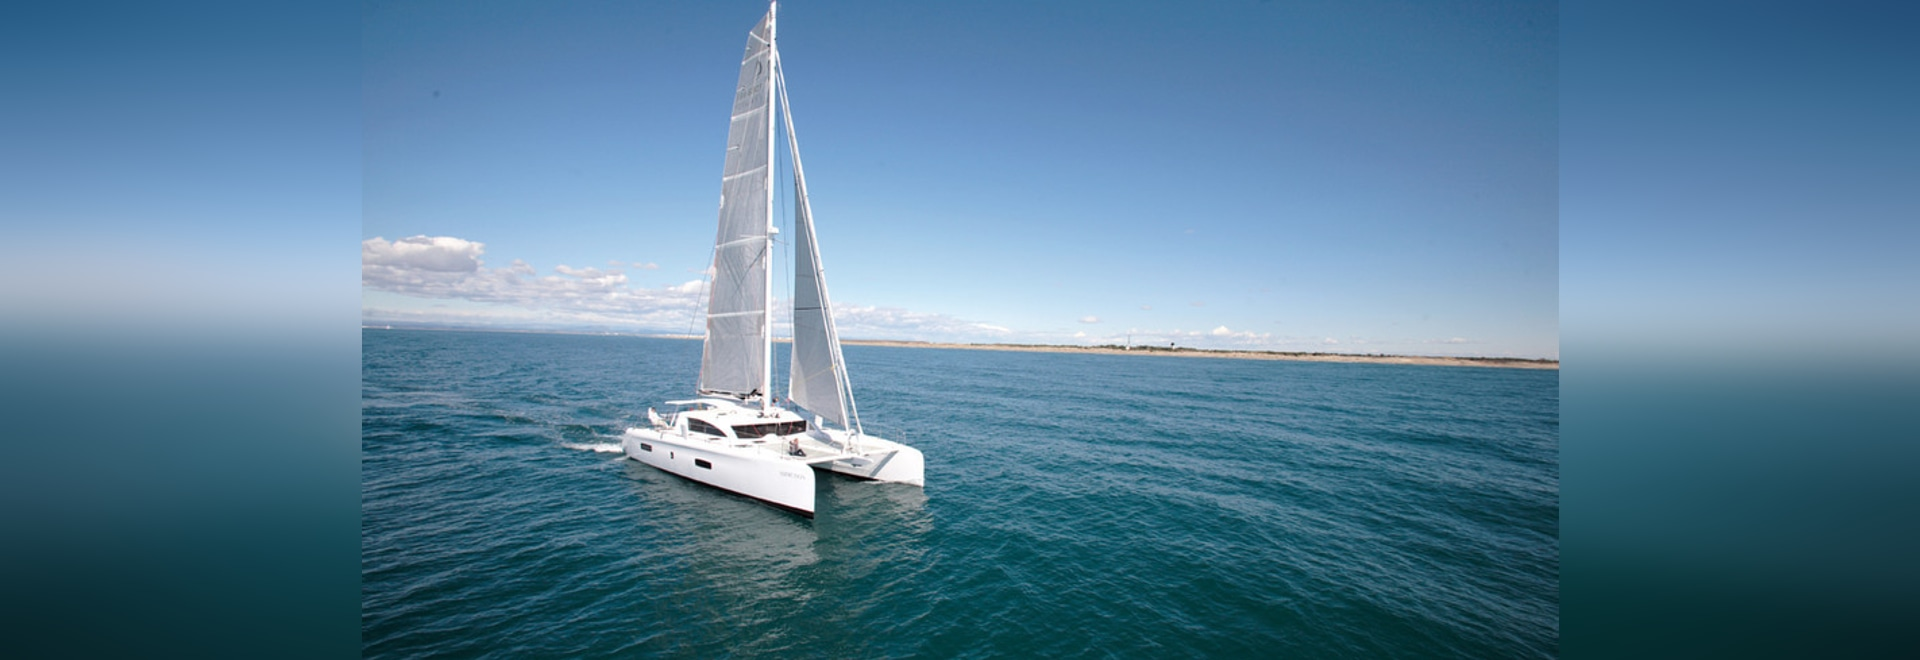 OUTREMER 5X : WILDLING